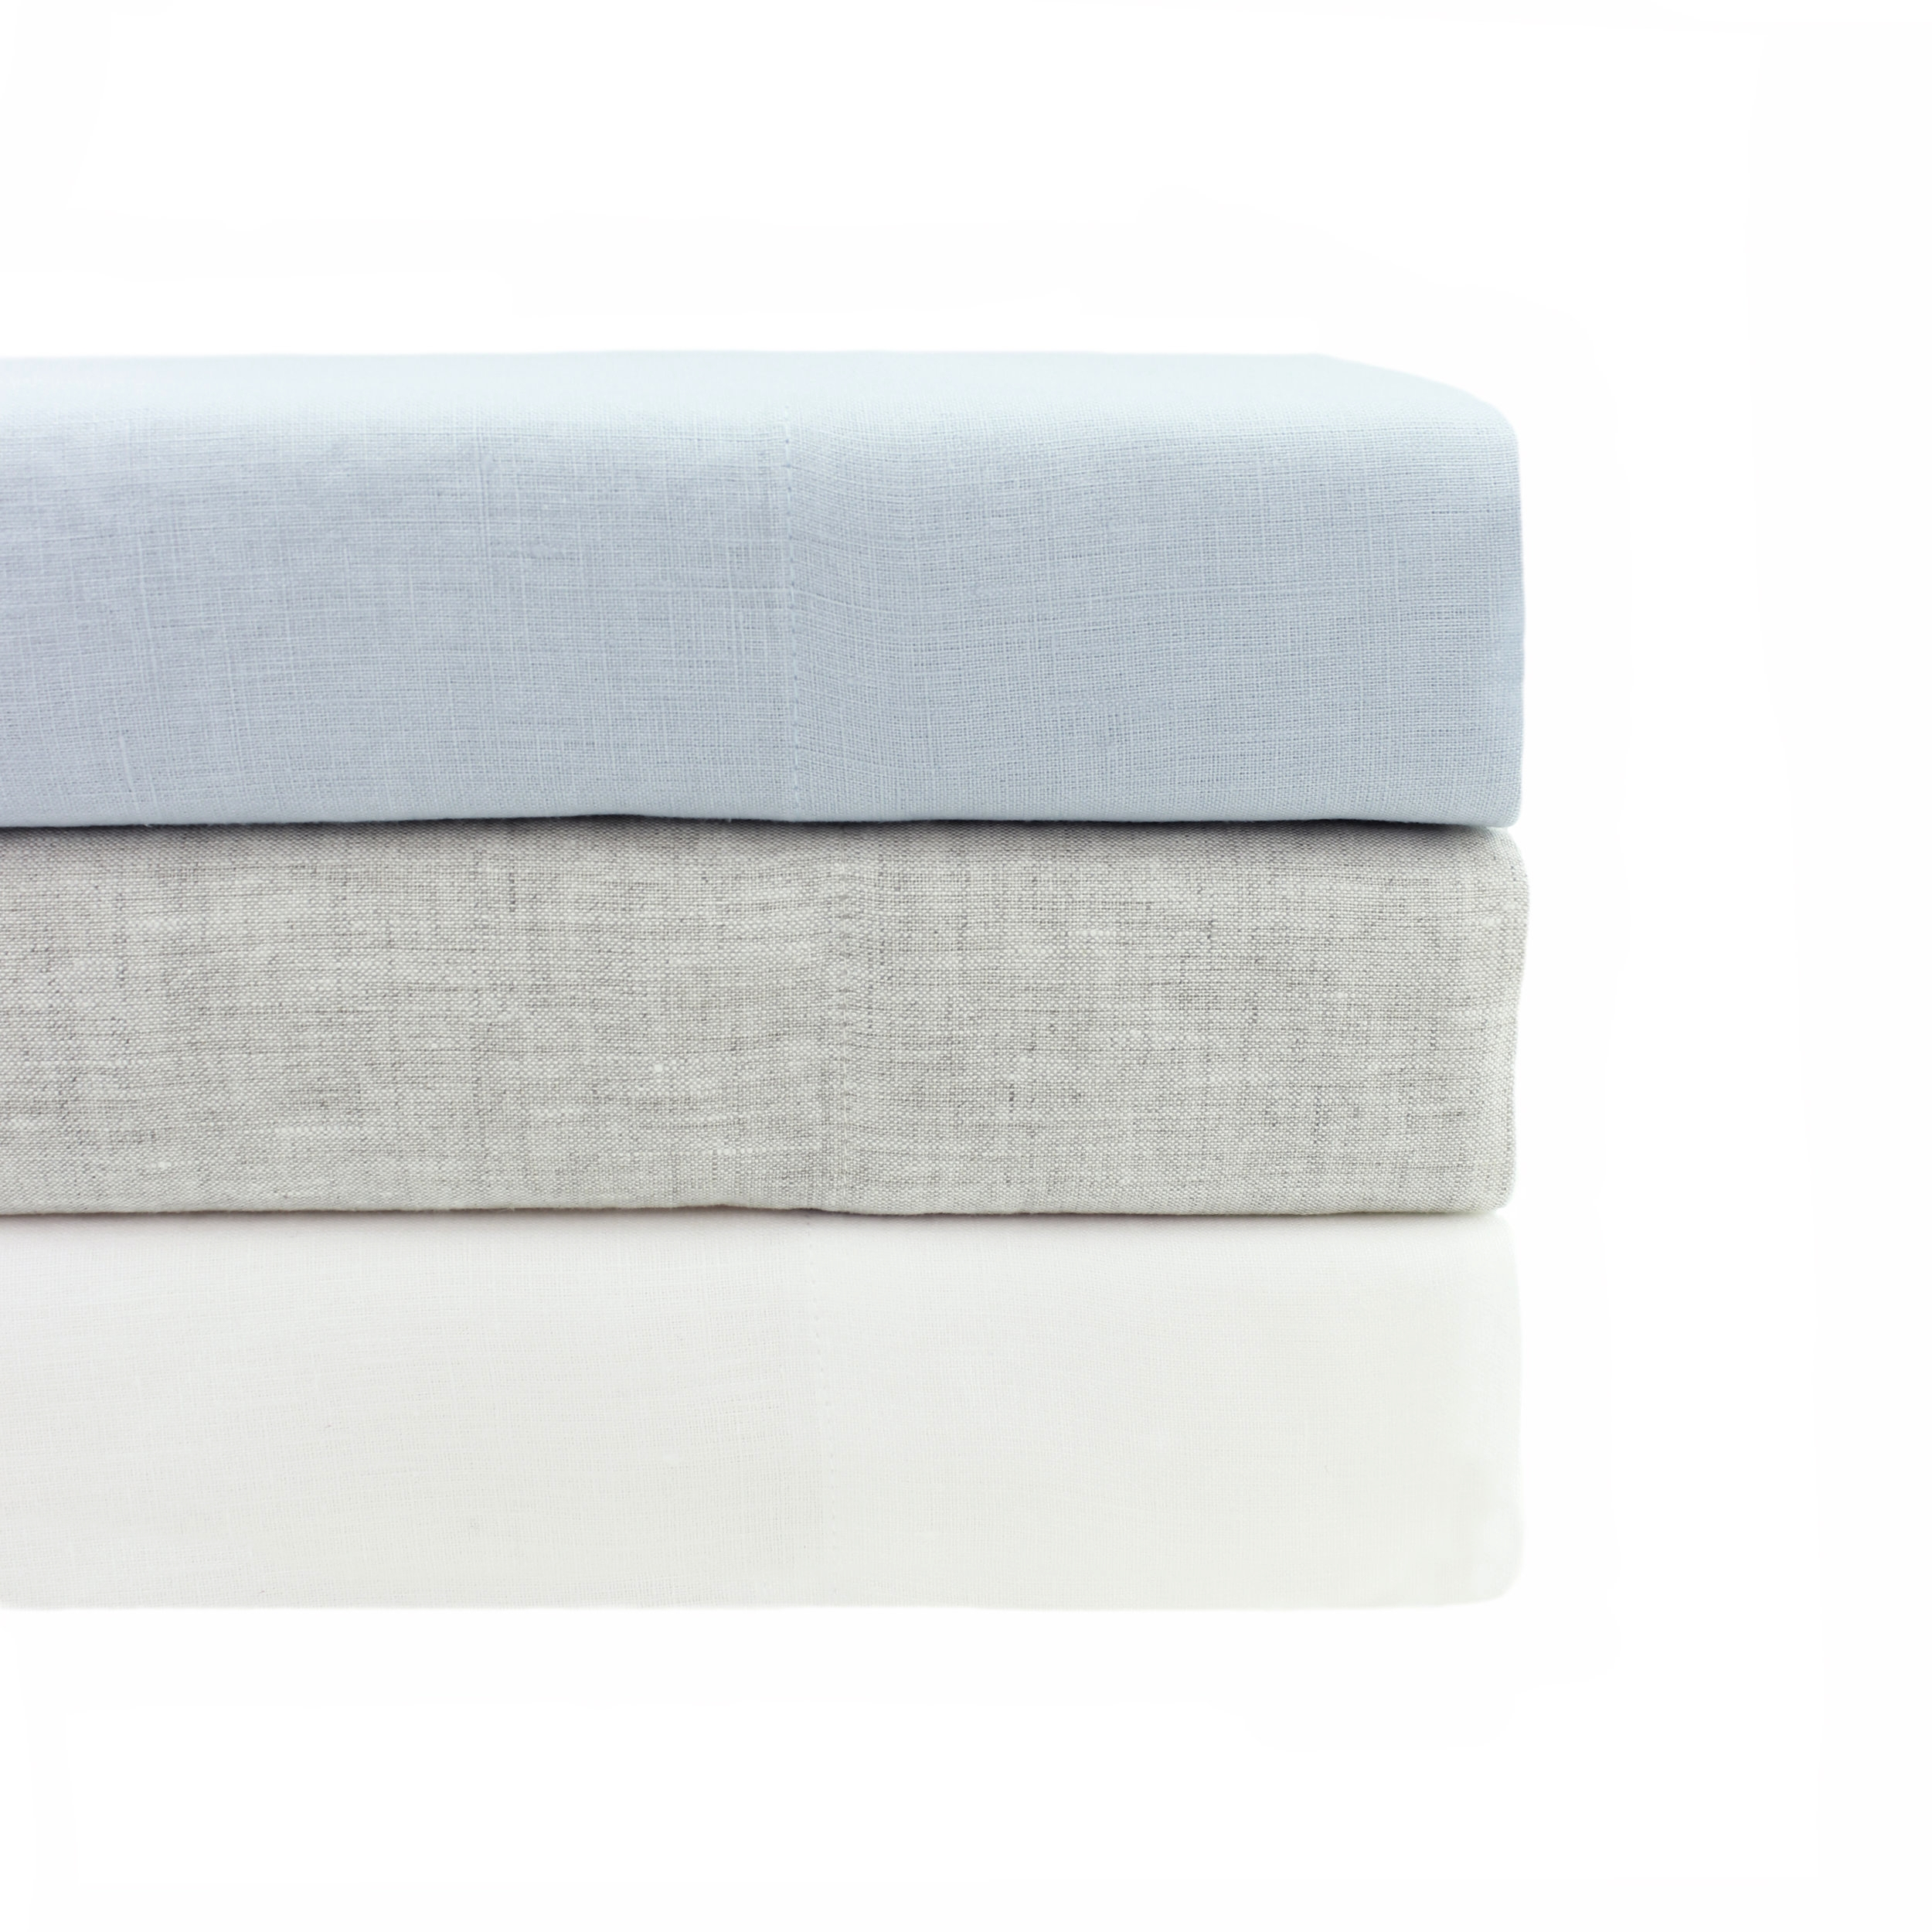 Linen Sheet Set_Plain Hem_All Colors.jpg